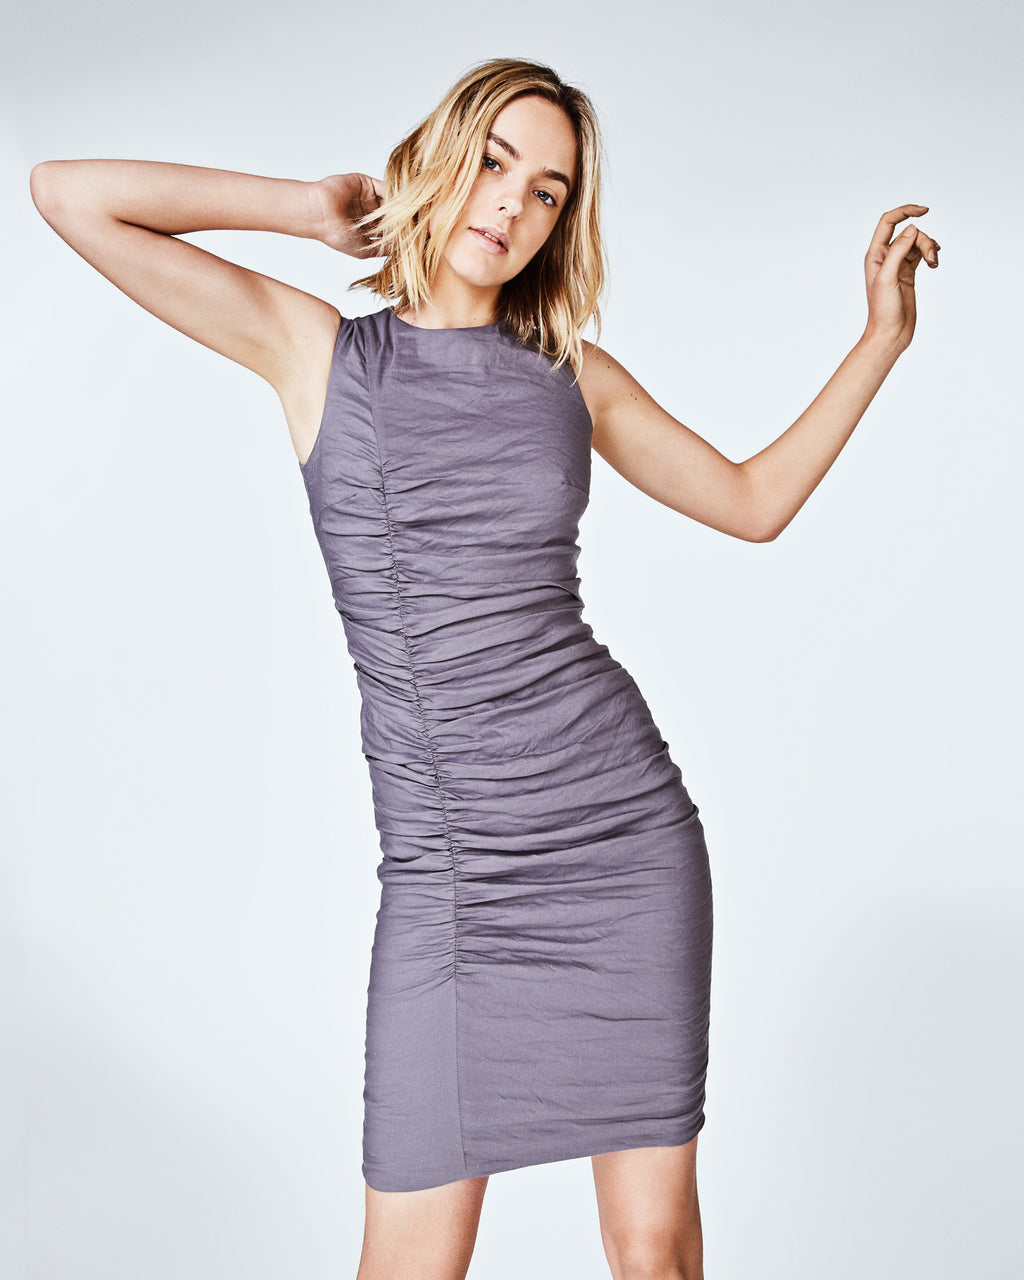 BS10162 - SOLID COTTON METAL TUCK DRESS - dresses - short - In our signature cotton metal, this sleeveless dress features a form fitting silhouette. Crafted with mindful tucking, this sheath dress is perfectfor the office or a special occasion. Finished with a concealed zipper for closure and a fully lined.